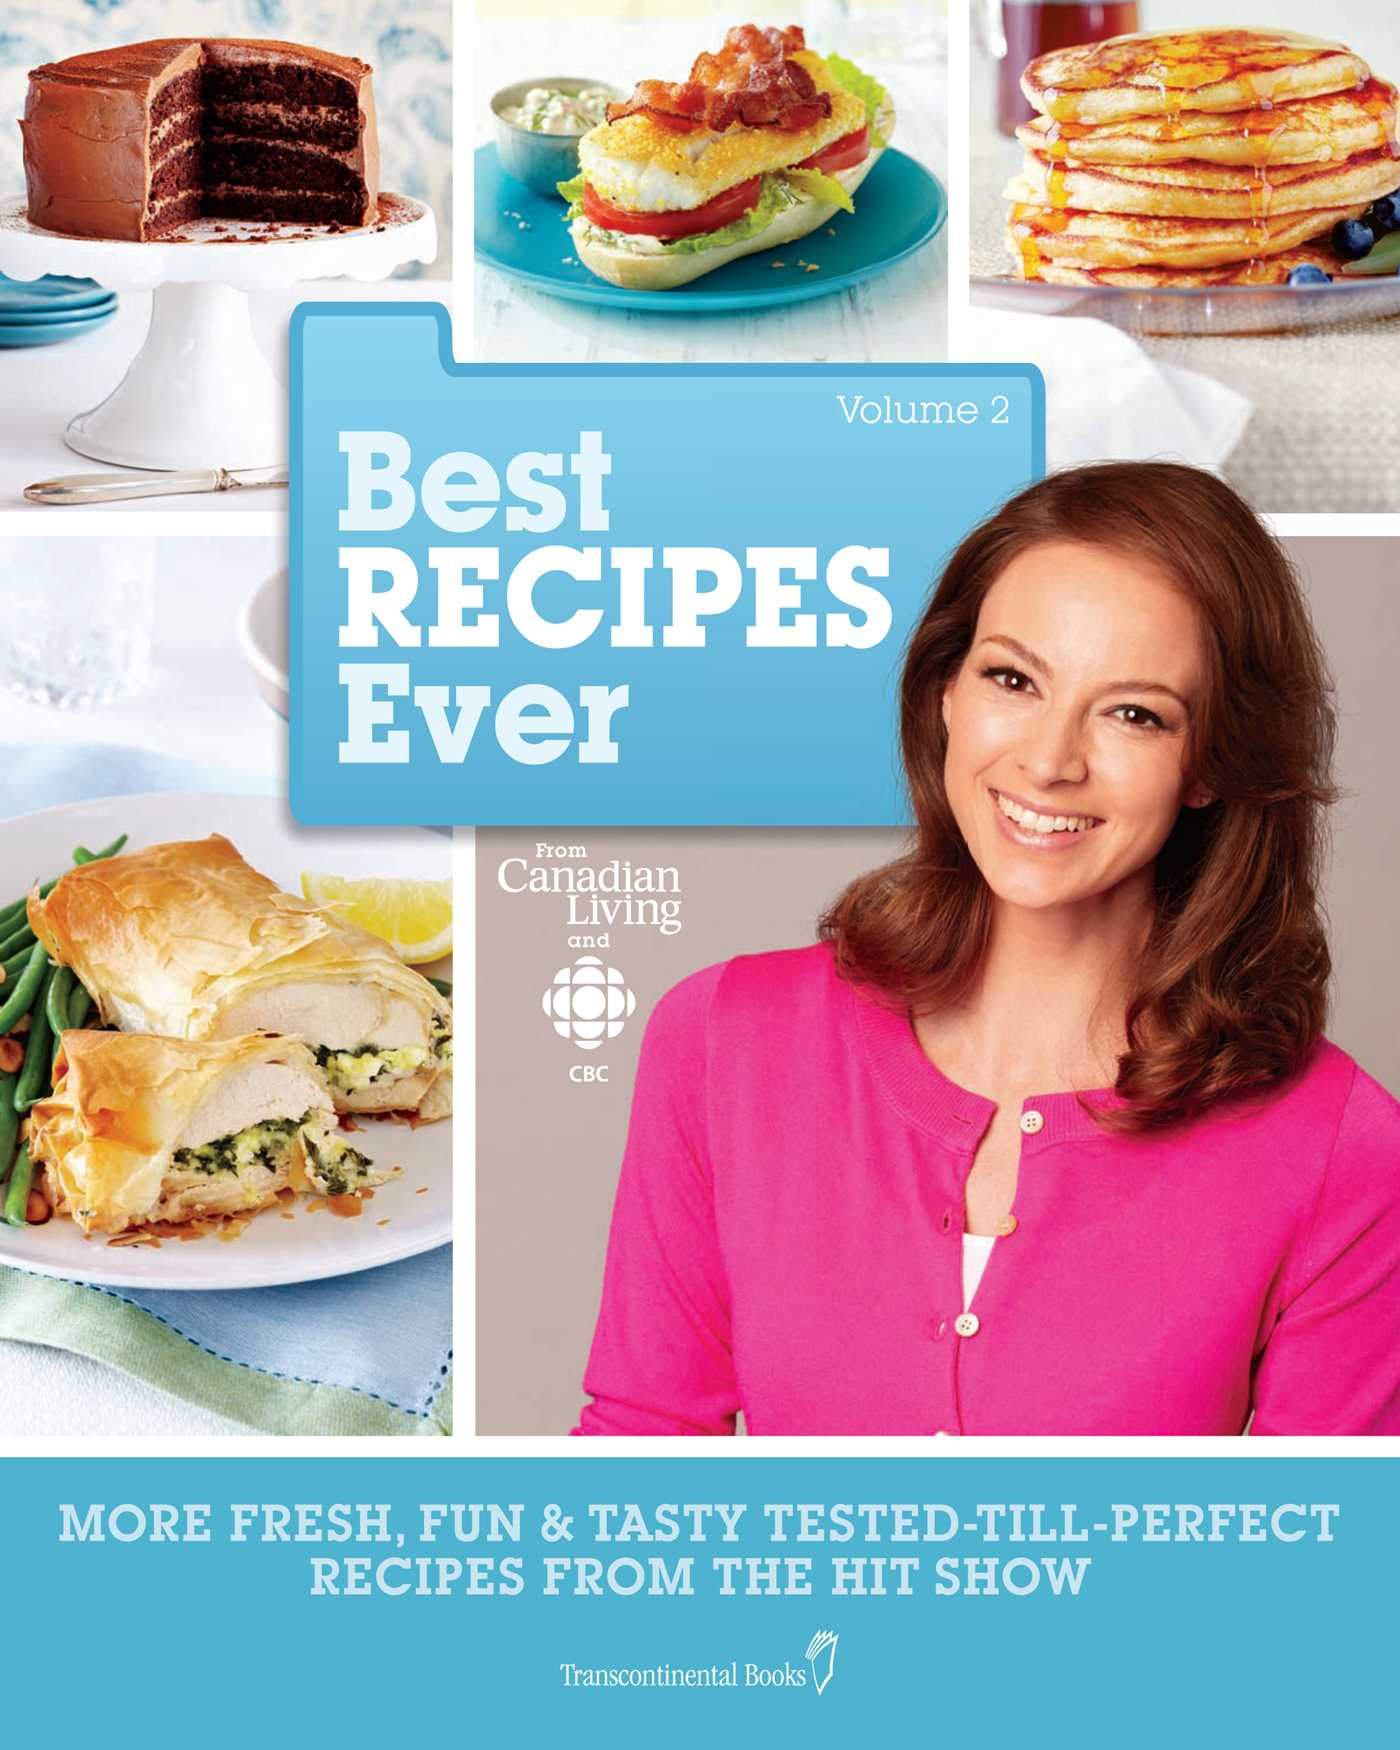 Best recipes ever from canadian living and cbc 2 9781927632000 hr